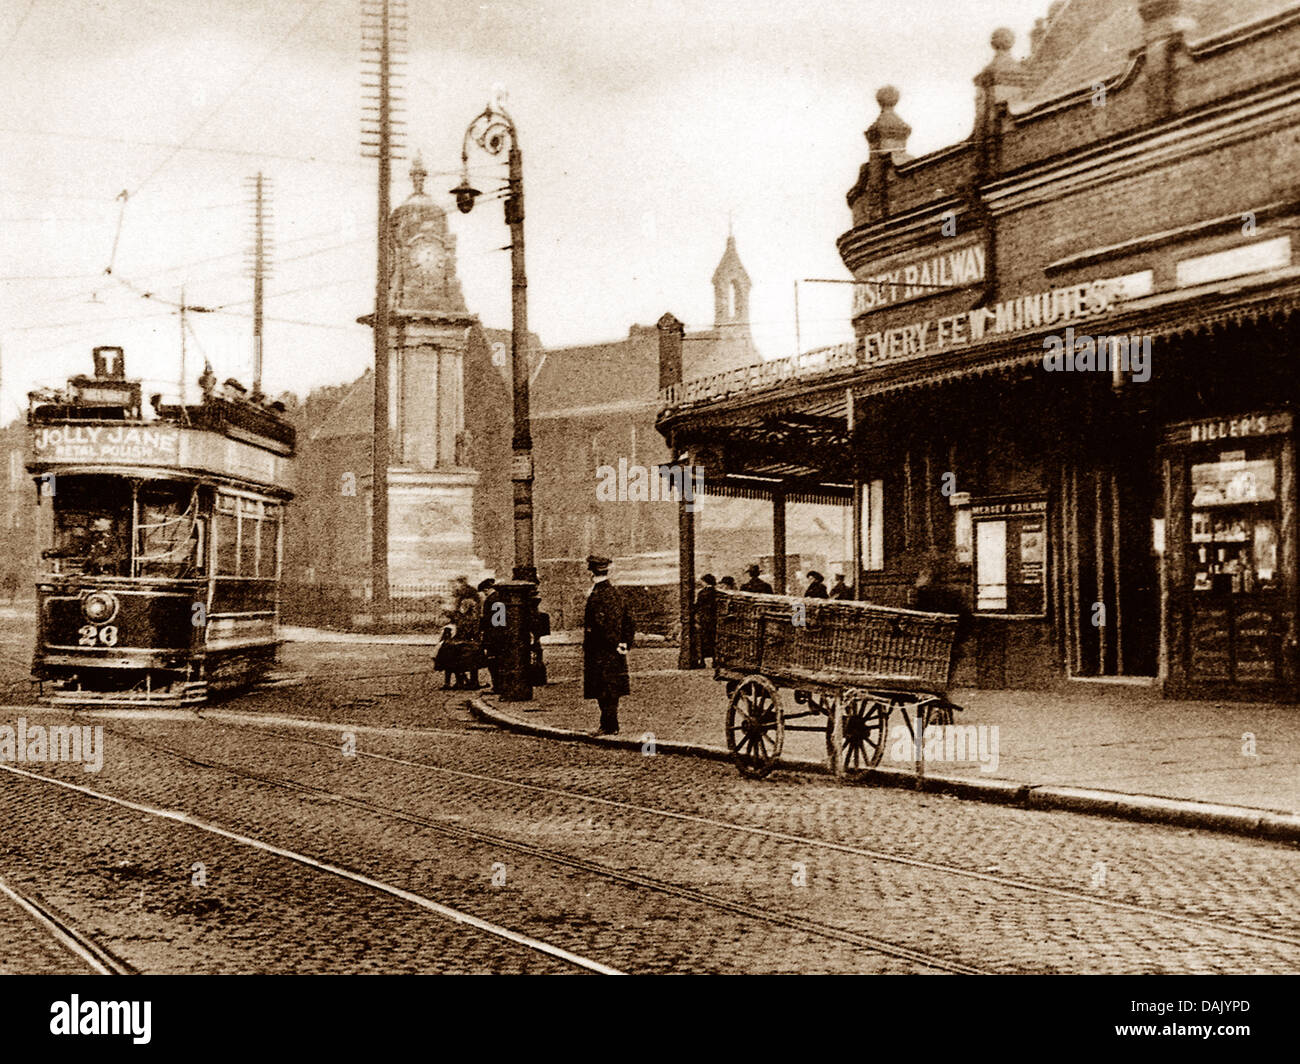 Birkenhead Central Railway Station early 1900s - Stock Image